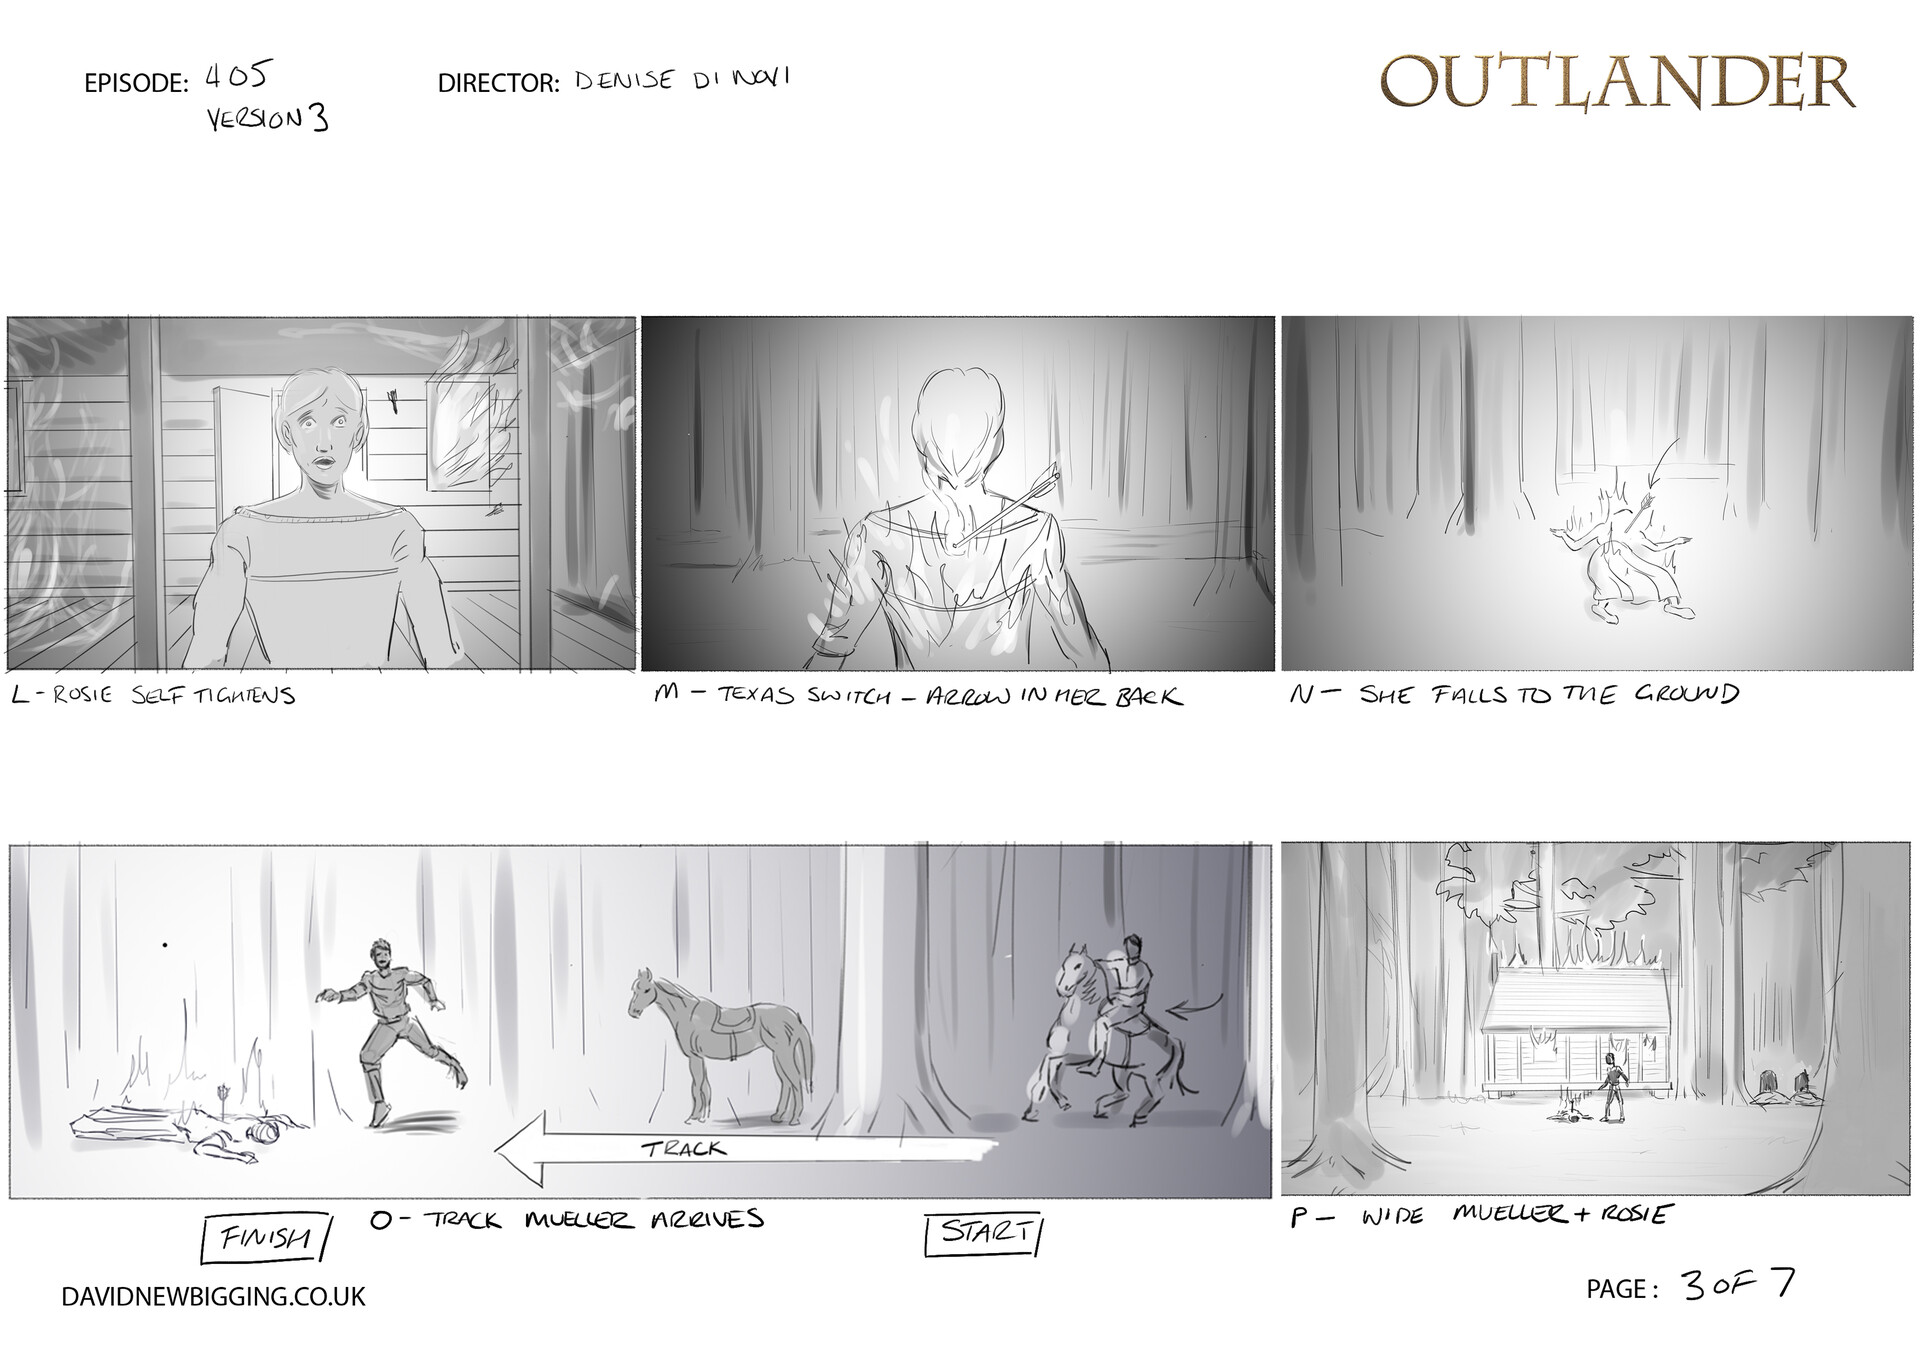 David newbigging outlander 405 cabin burning sequence storyboards version 3 3